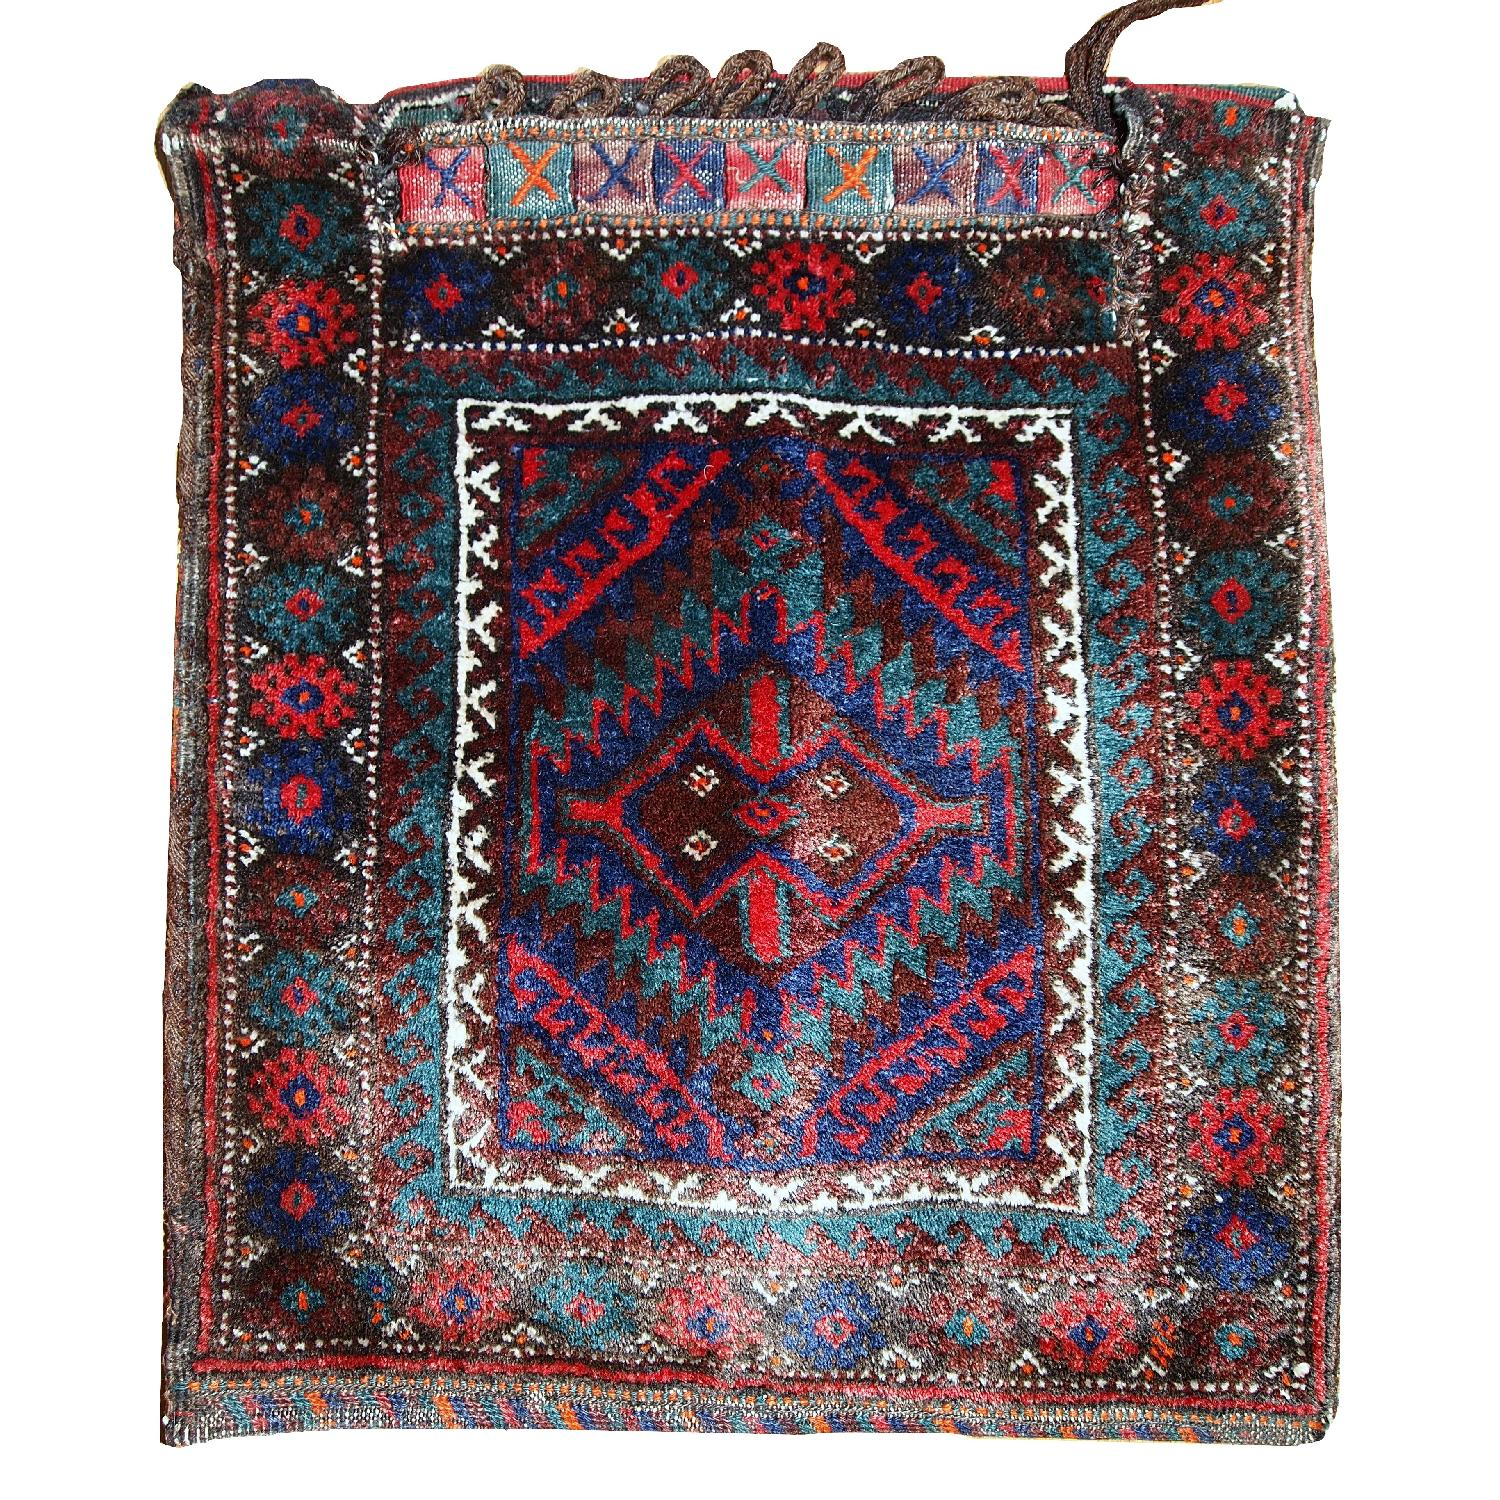 Antique Handmade Persian Kurdish Salt Bag Rug - image-0